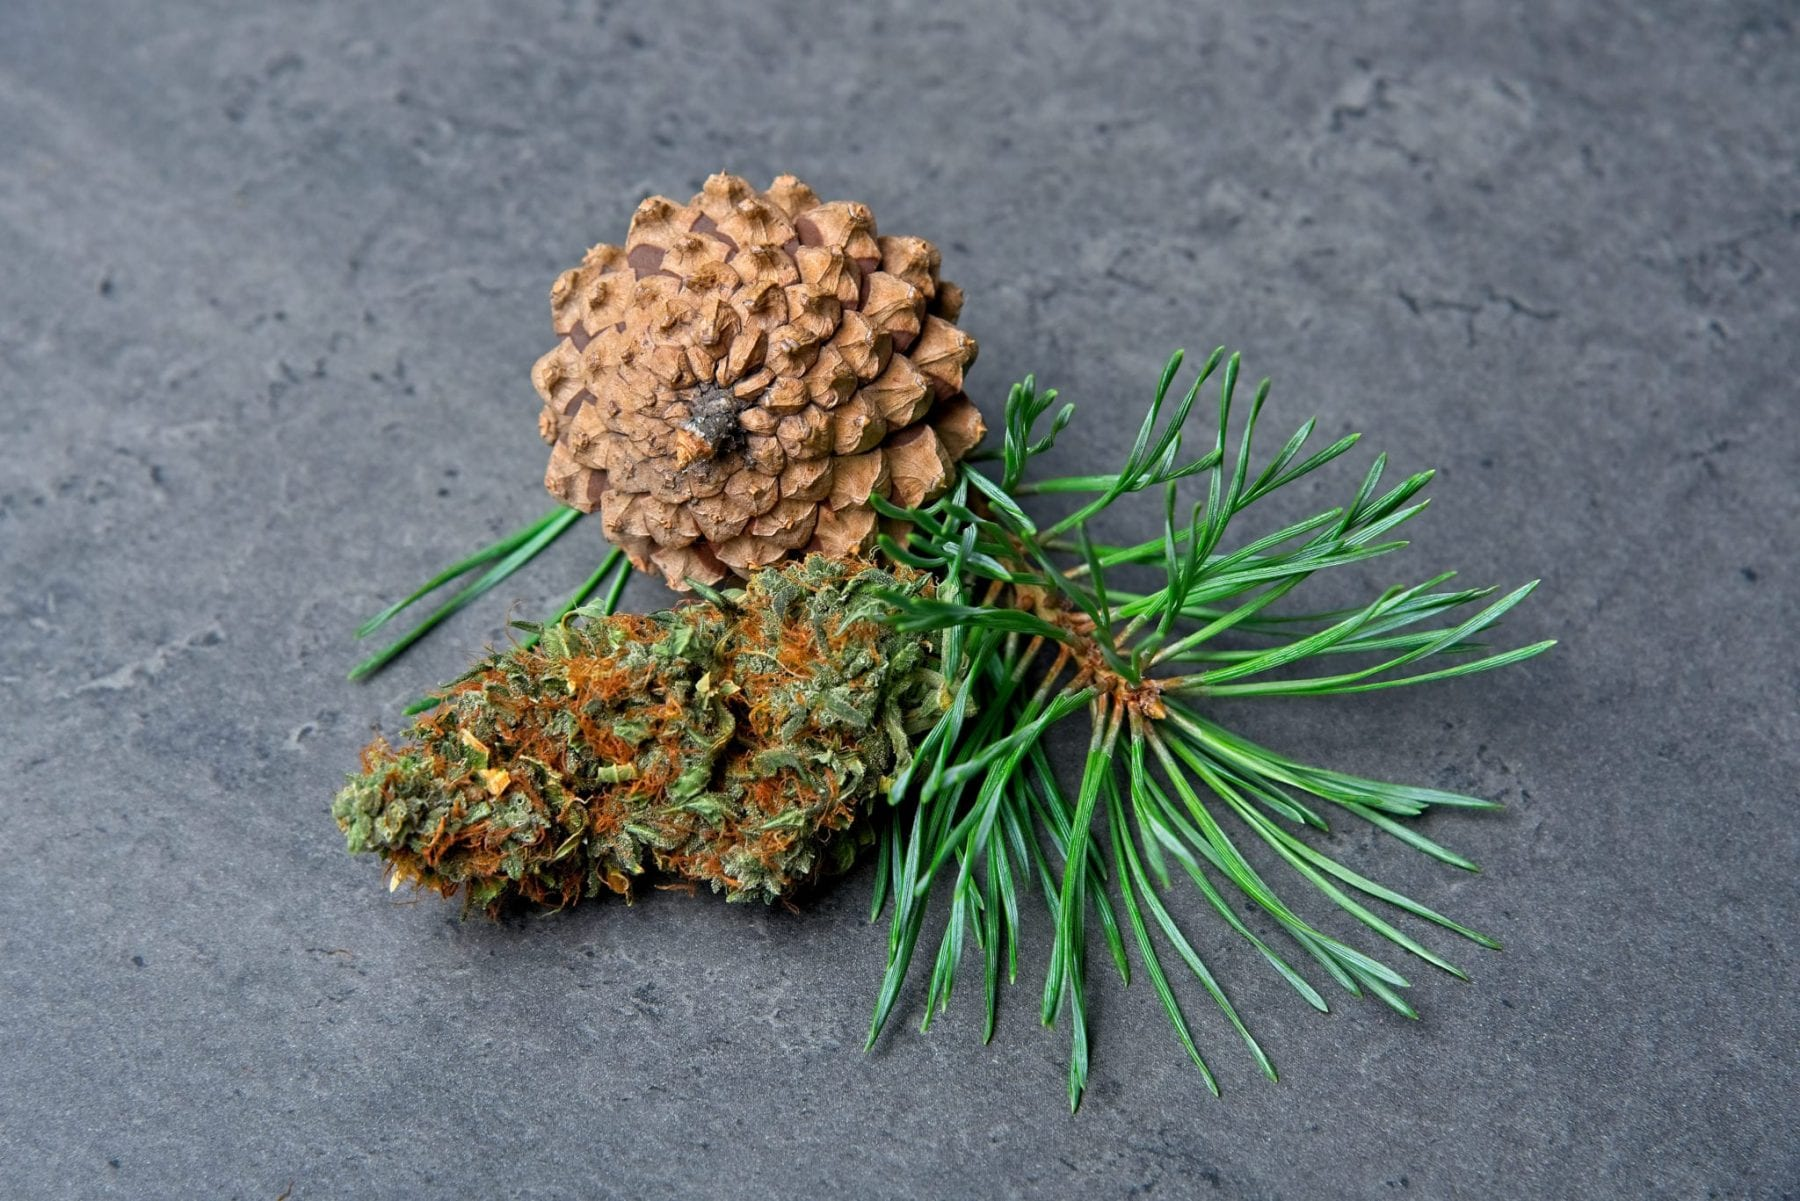 A Pine cone and cannabis bud to represent terpenes